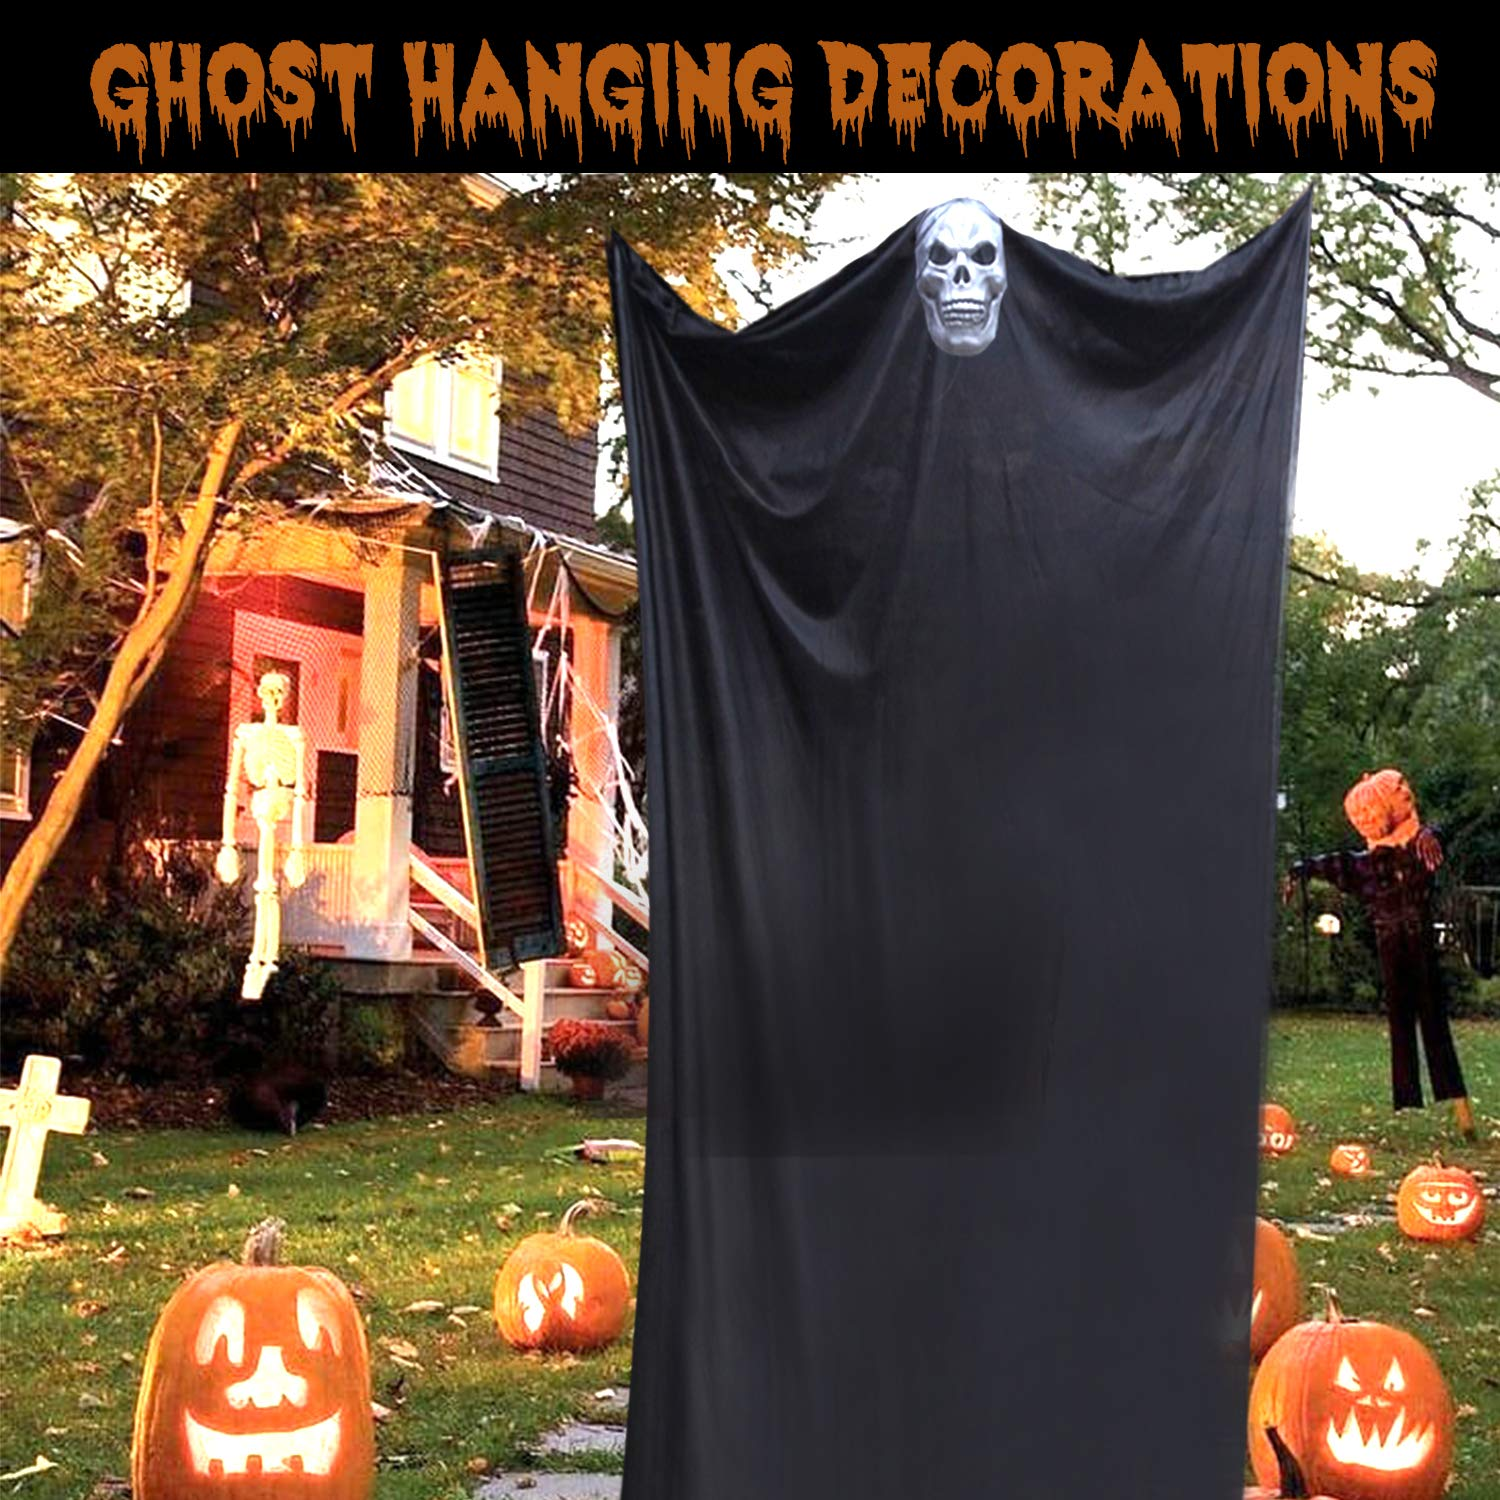 11FT Halloween Prop Hanging Scary Decor Skeleton Flying Ghost Creepy